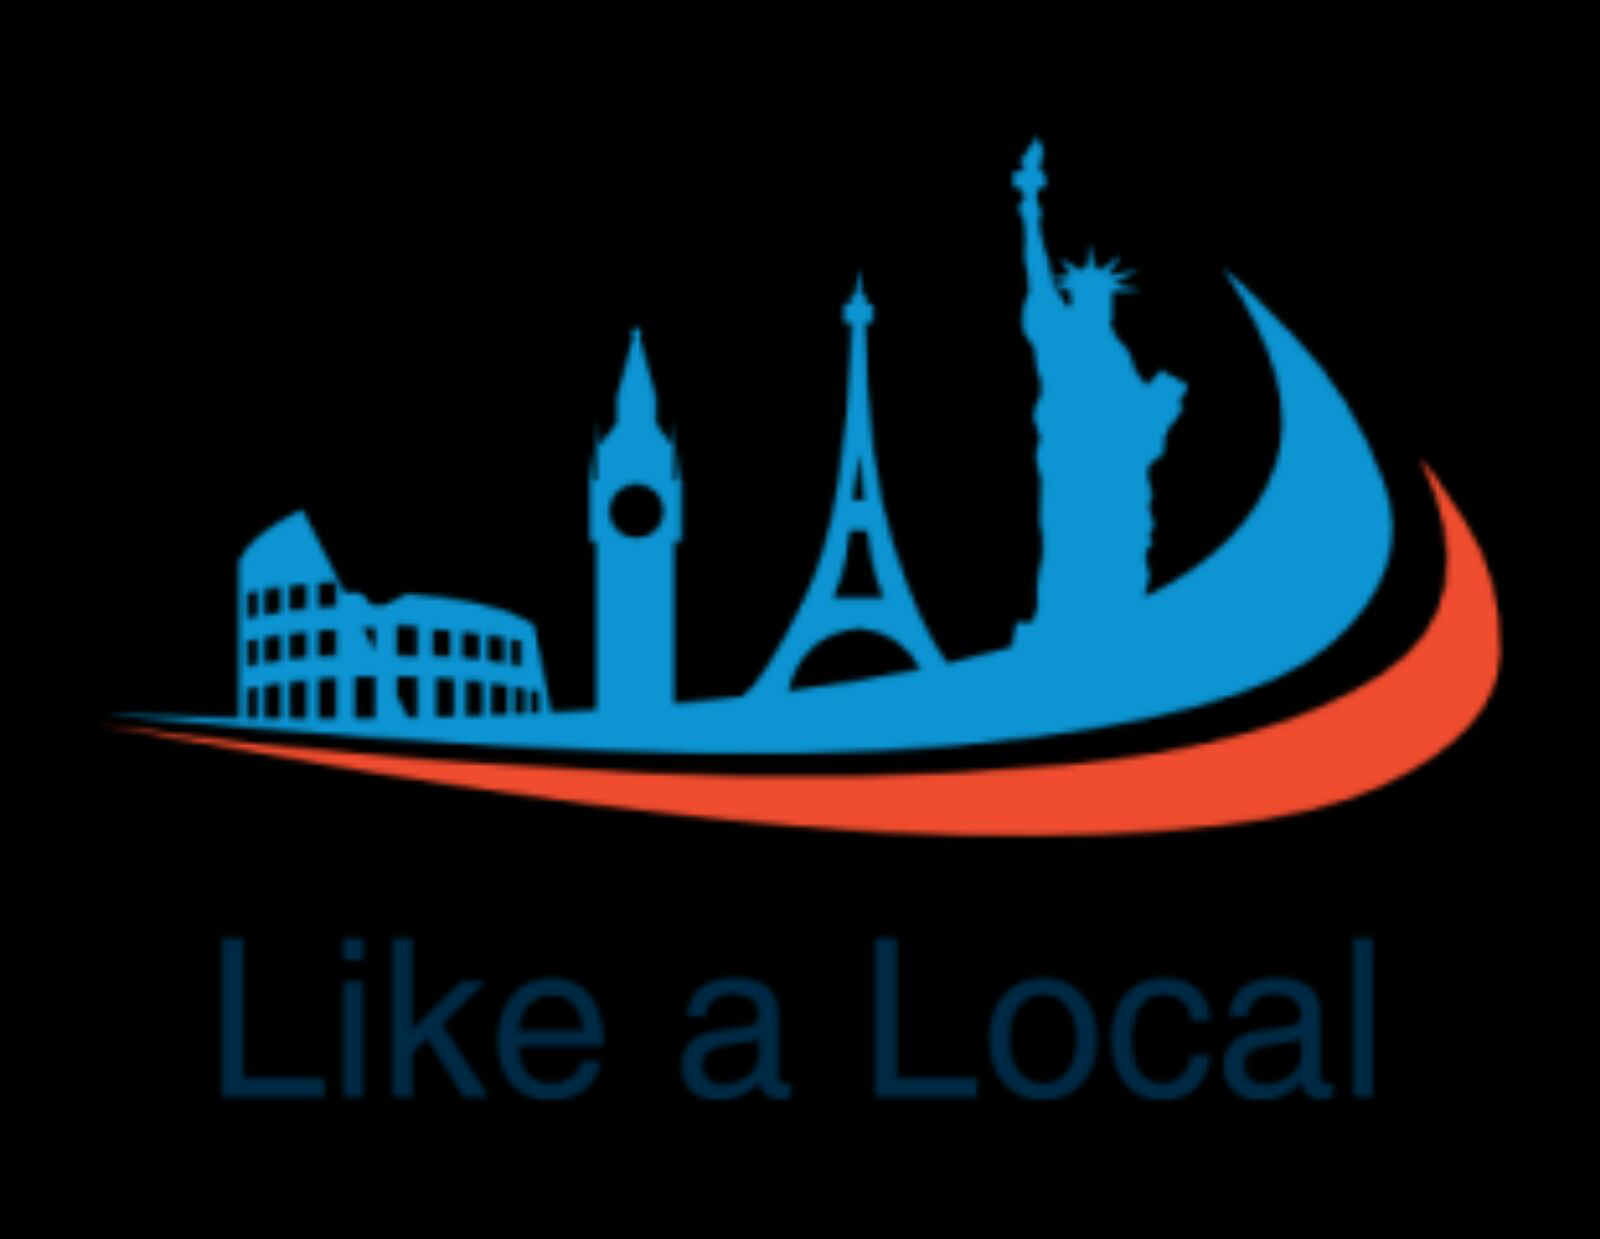 be your travel agent. Like a Local Traveling.